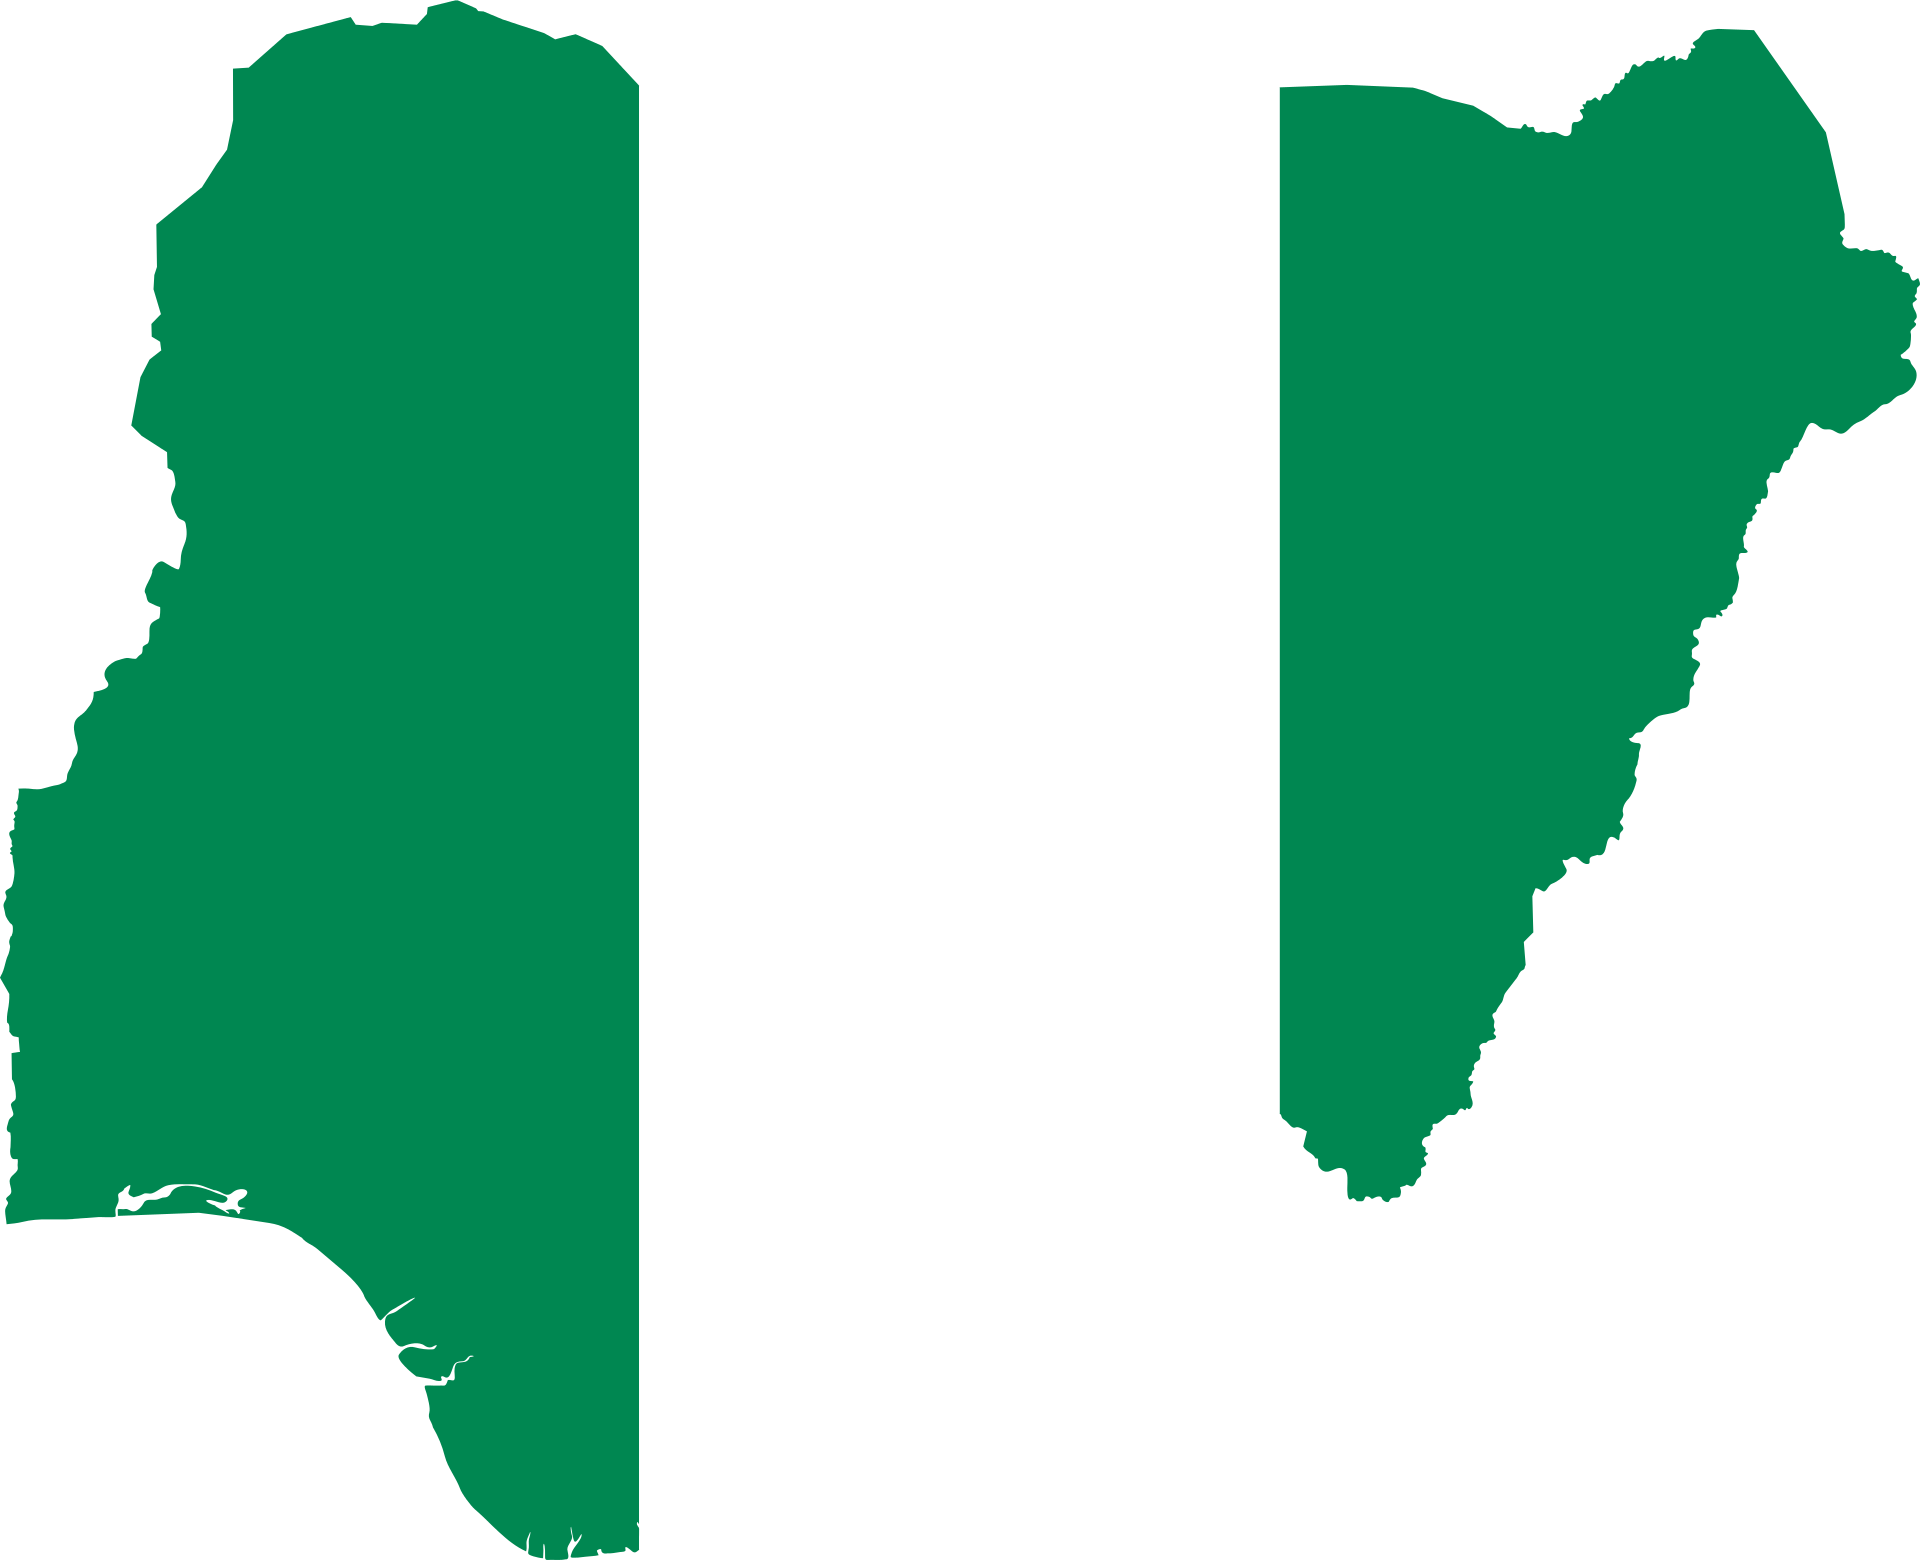 Nigeria Map Flag, Polluted Countries